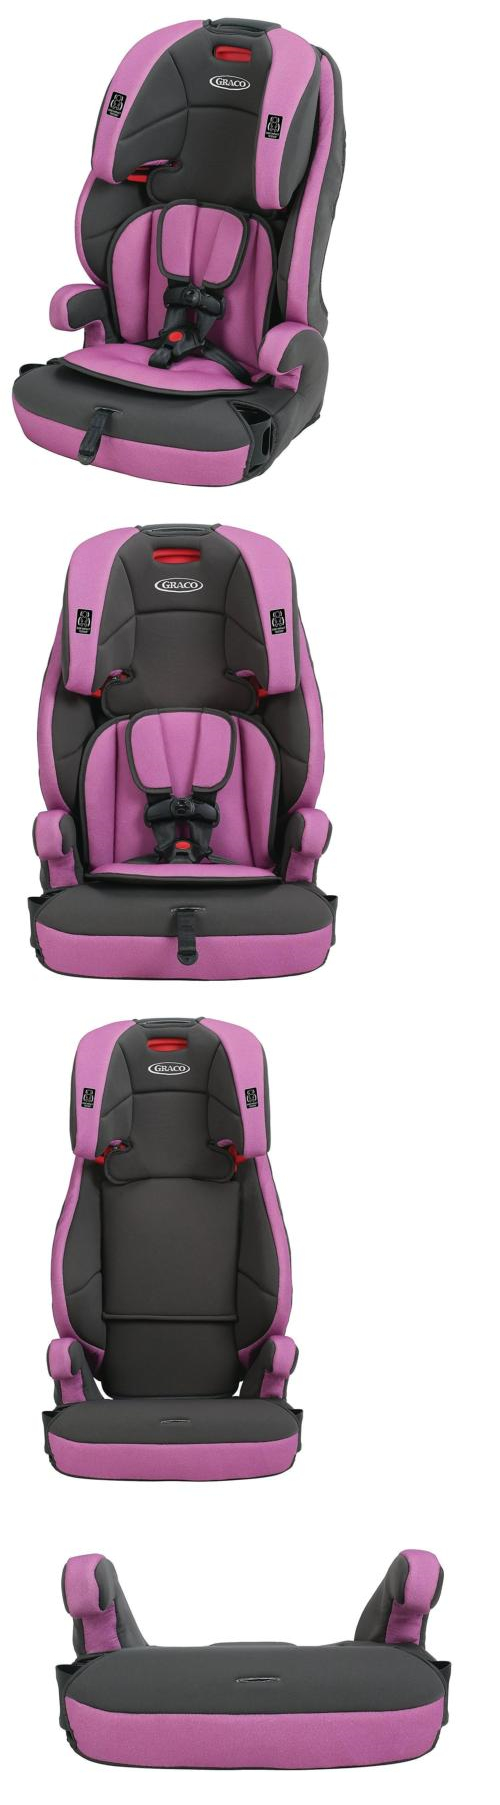 Baby And Kid Stuff Graco Tranzitions 3 In 1 Harness Booster Convertible Car Seat